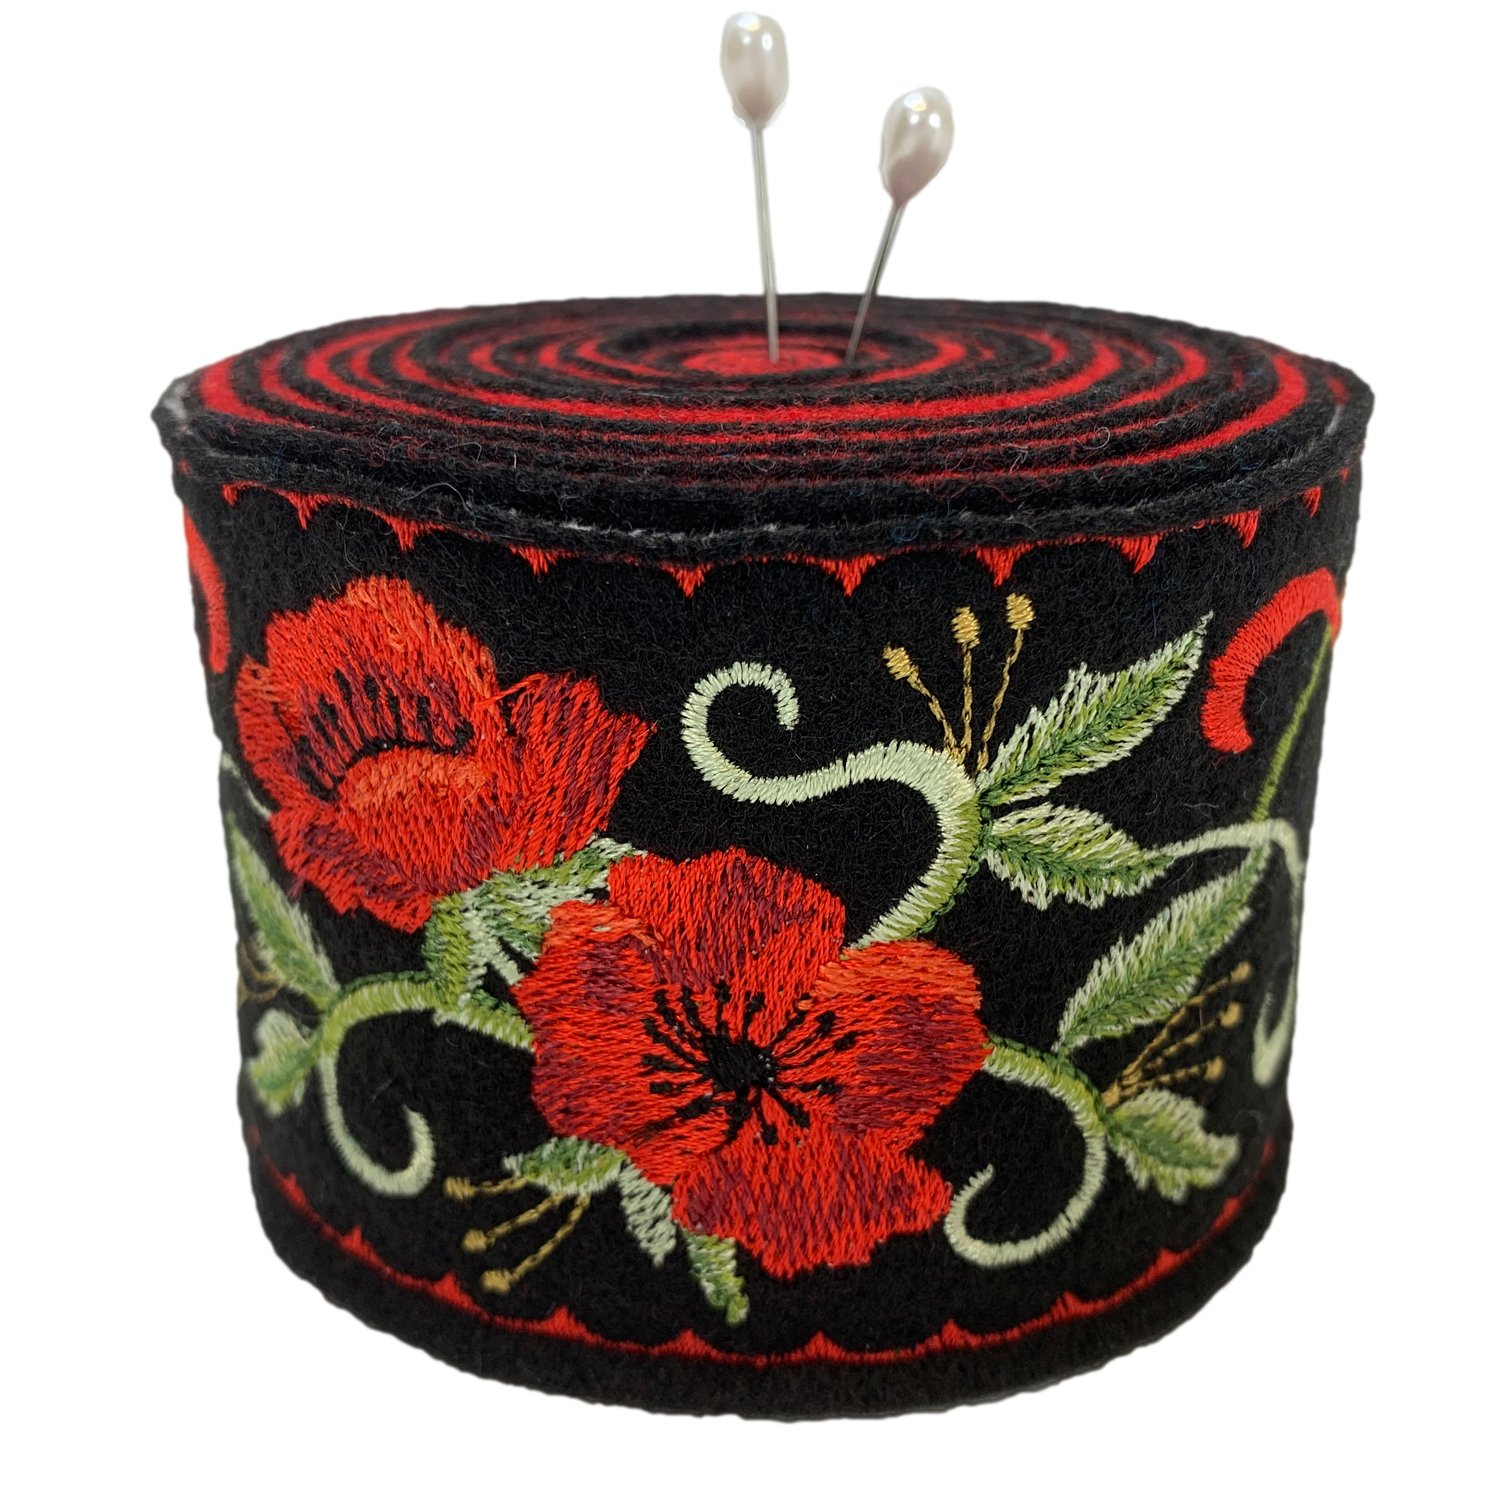 Embroidered Felt Pincushion Poppies